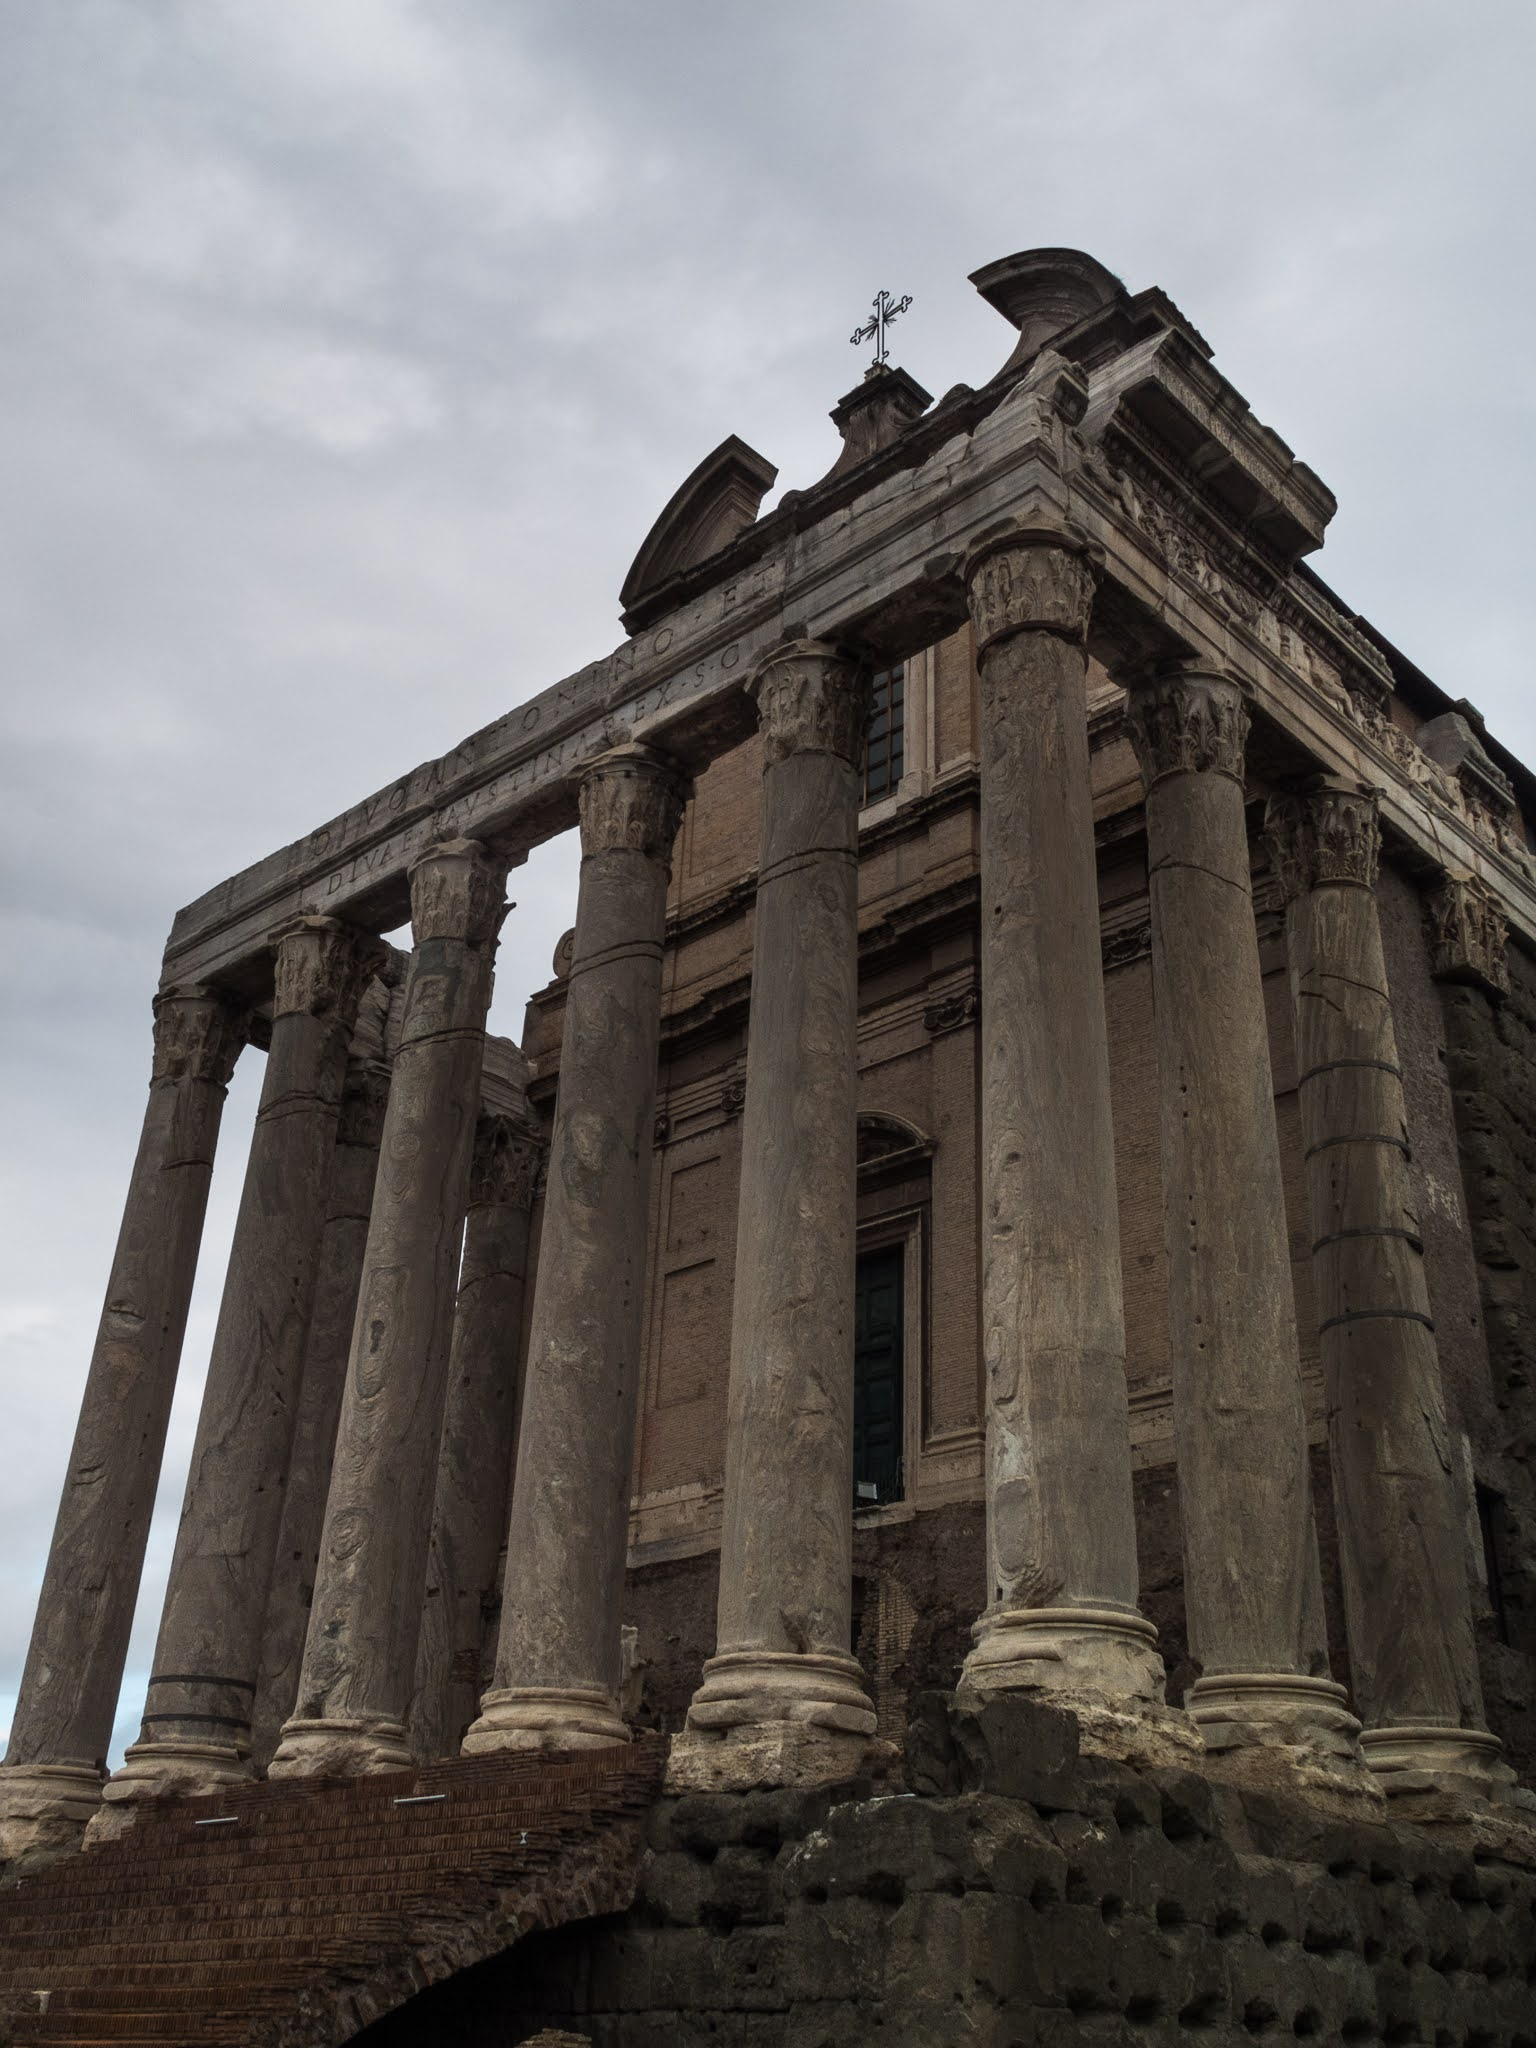 Looking up at the columns and the Temple of Antoninus and Faustina